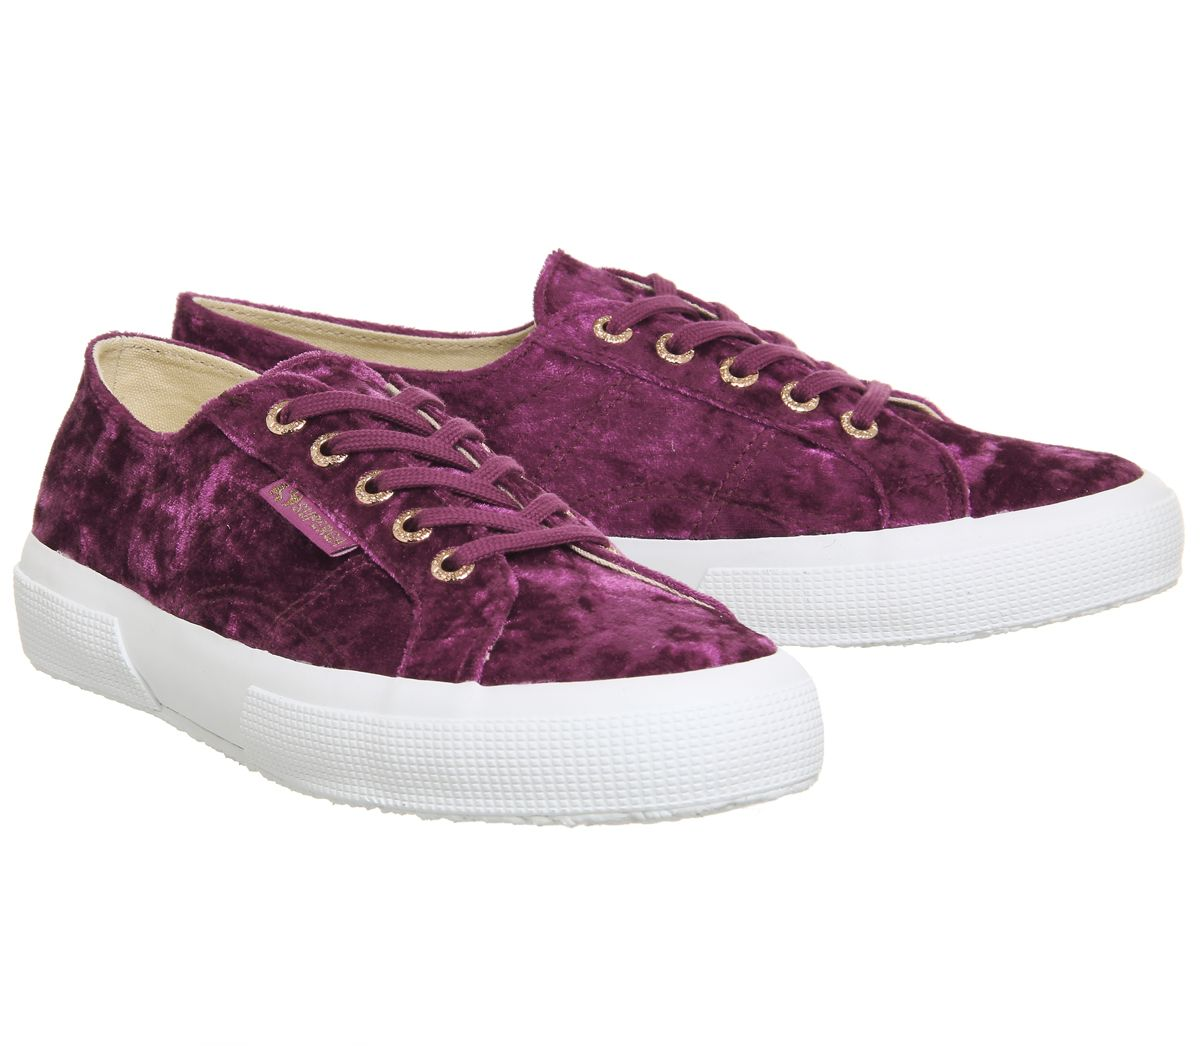 58cc49a3fea507 Womens Superga 2750 Trainers Pink Ash Rose Velvet Trainers Shoes | eBay